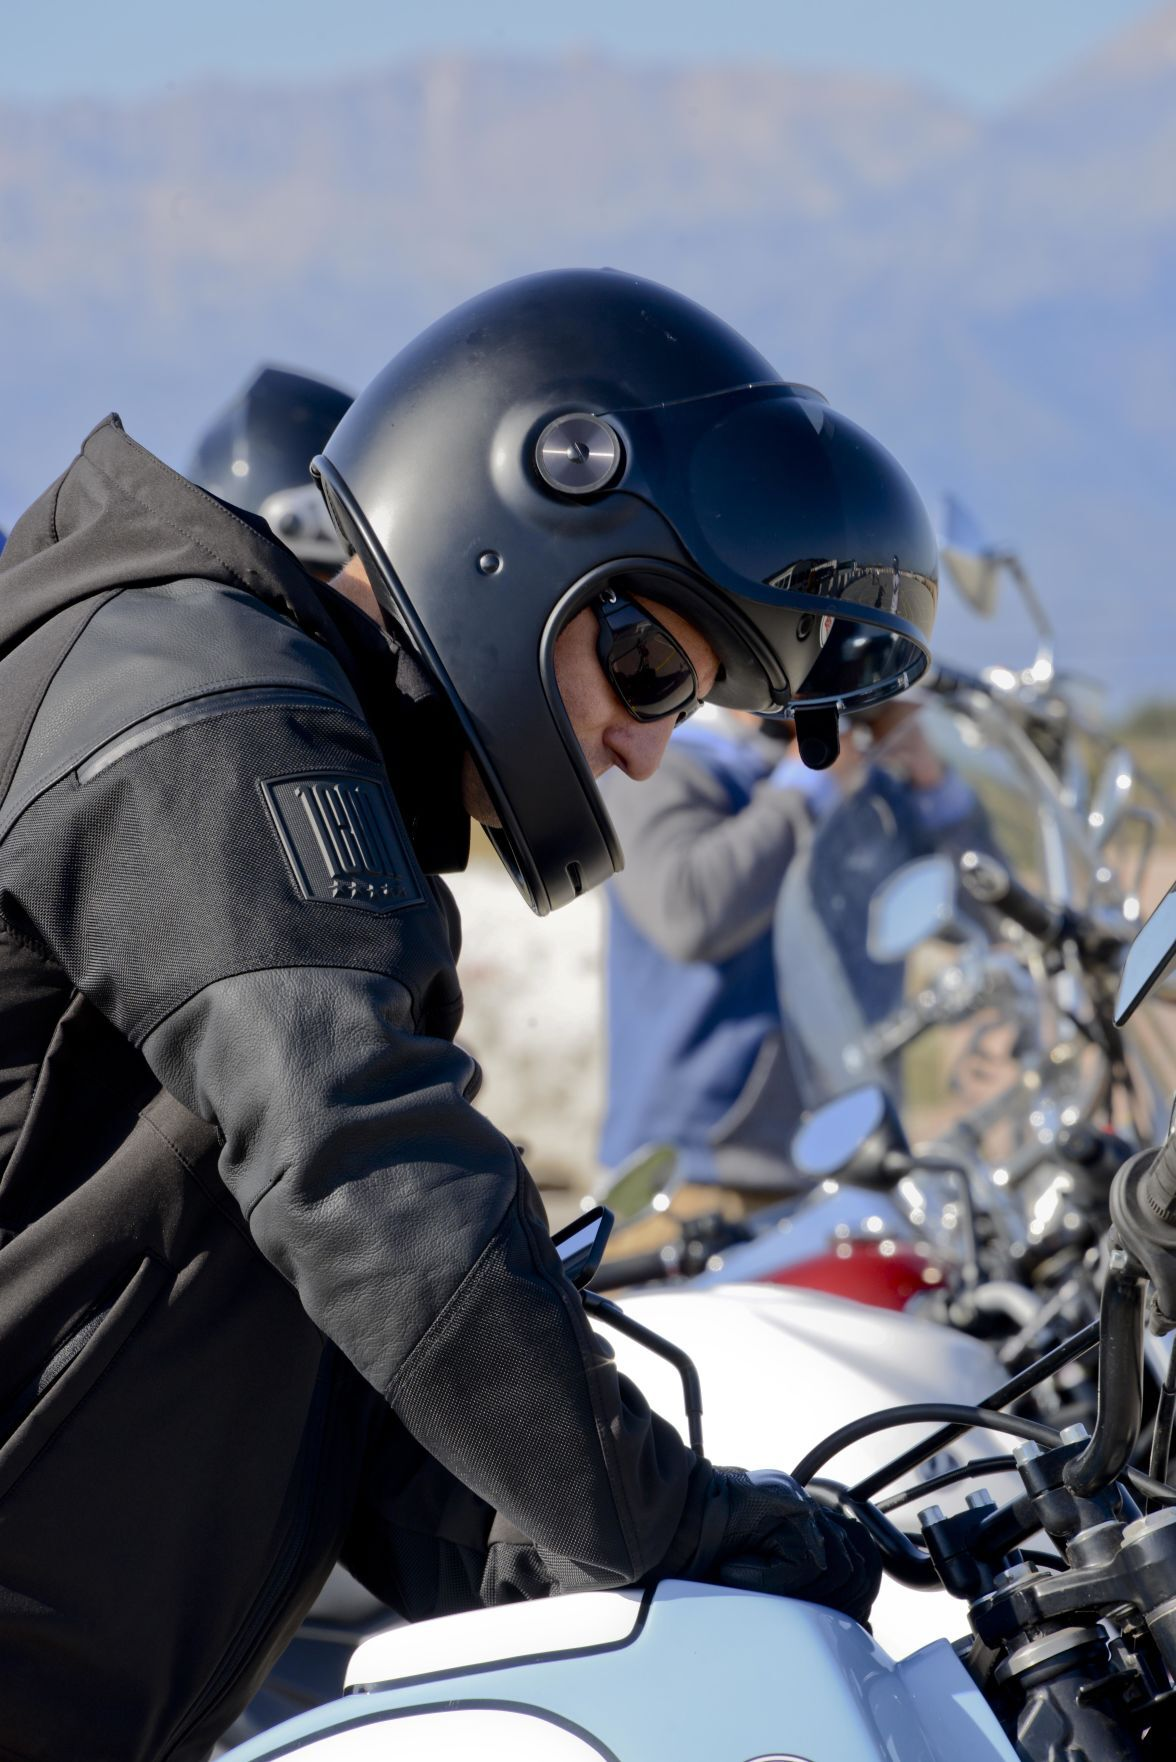 Naval Safety Center offers motorcyclists tips to weather winter